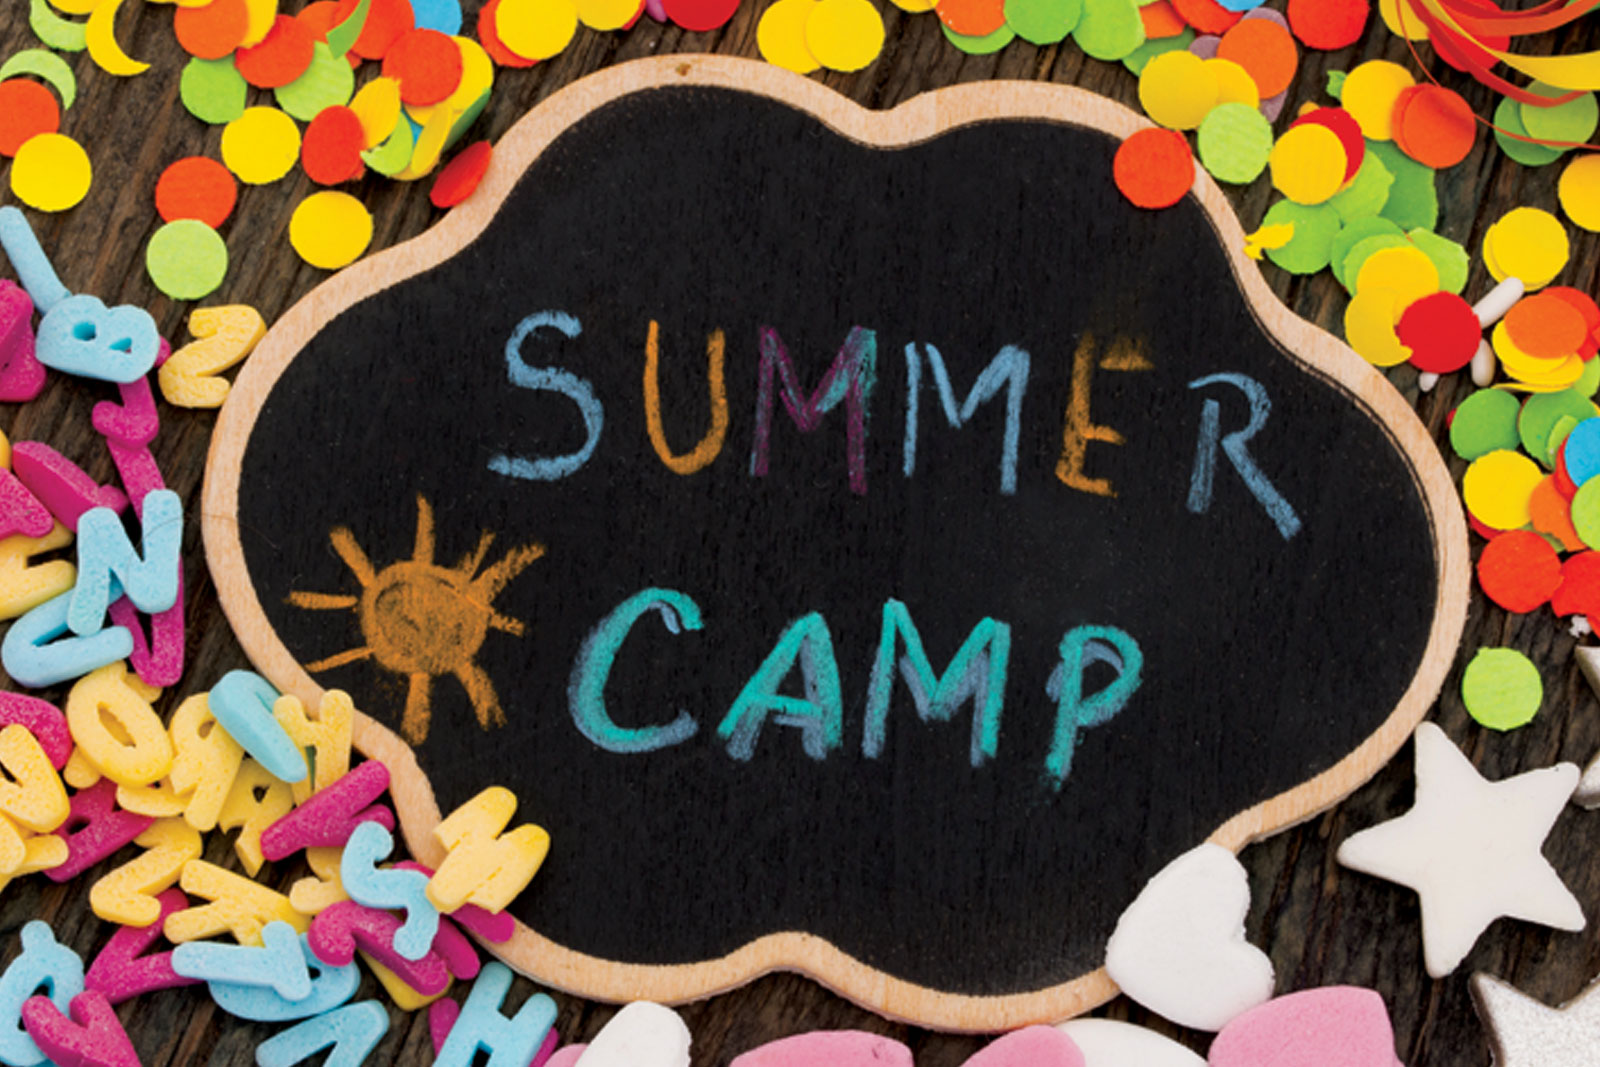 Summer Camps in Malibu